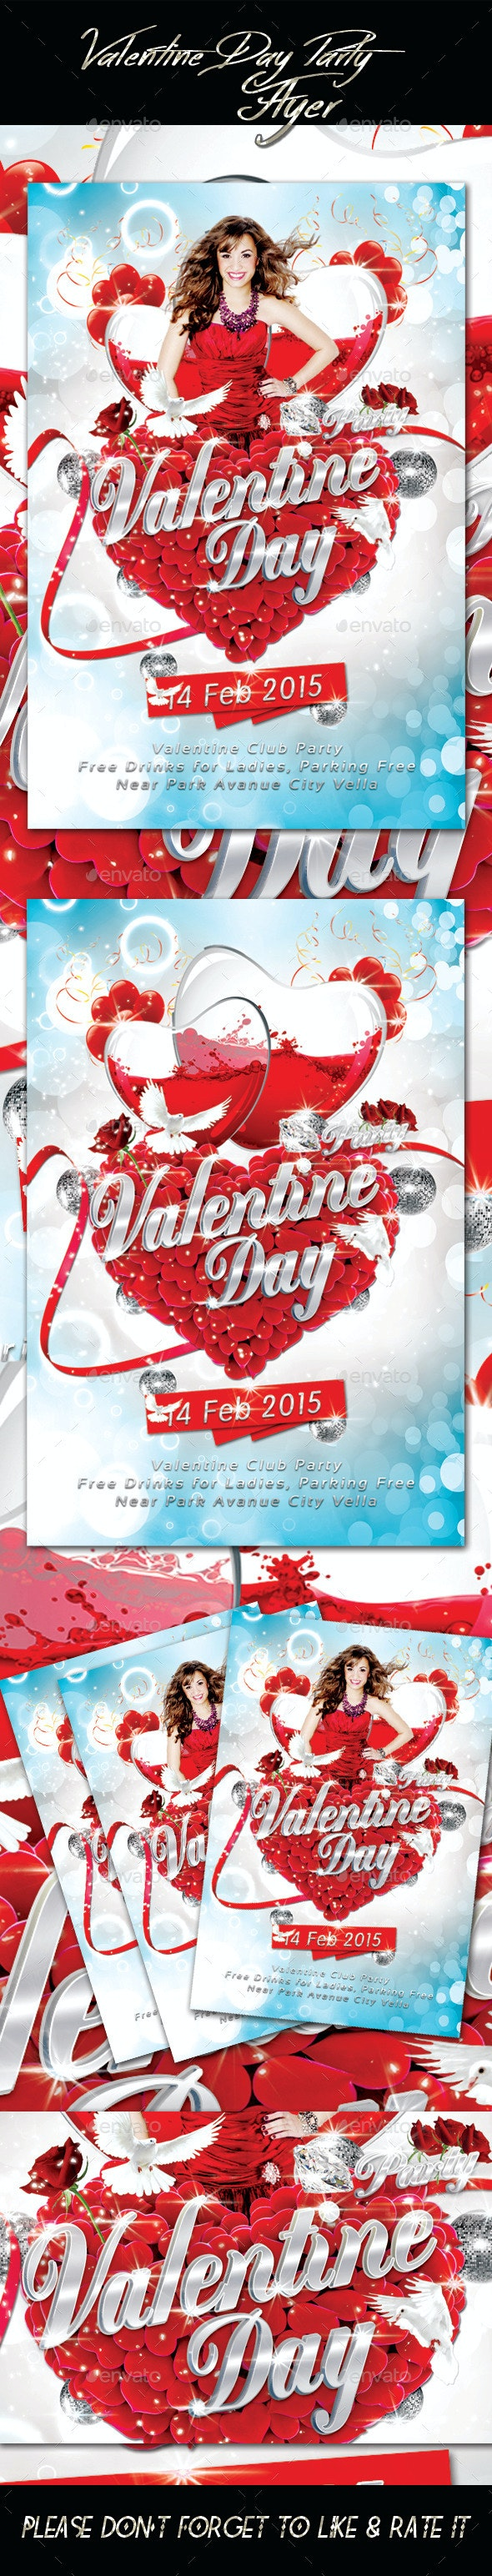 Valentines Day Party 2 Flyer - Events Flyers